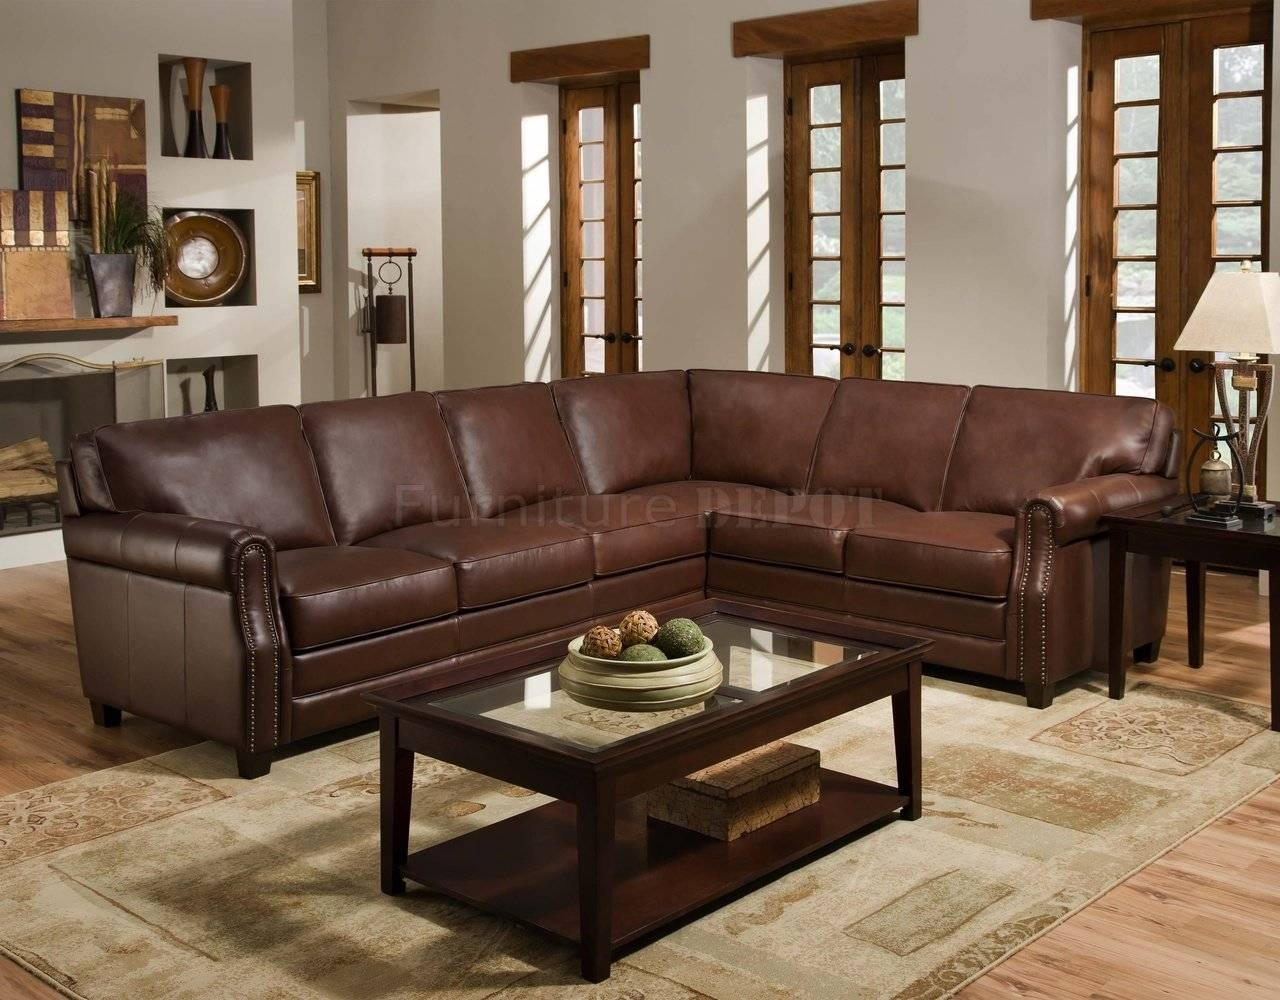 Cocoa Brown Top Grain Italian Leather Traditional Sectional Sofa with regard to Traditional Sectional Sofas (Image 7 of 25)